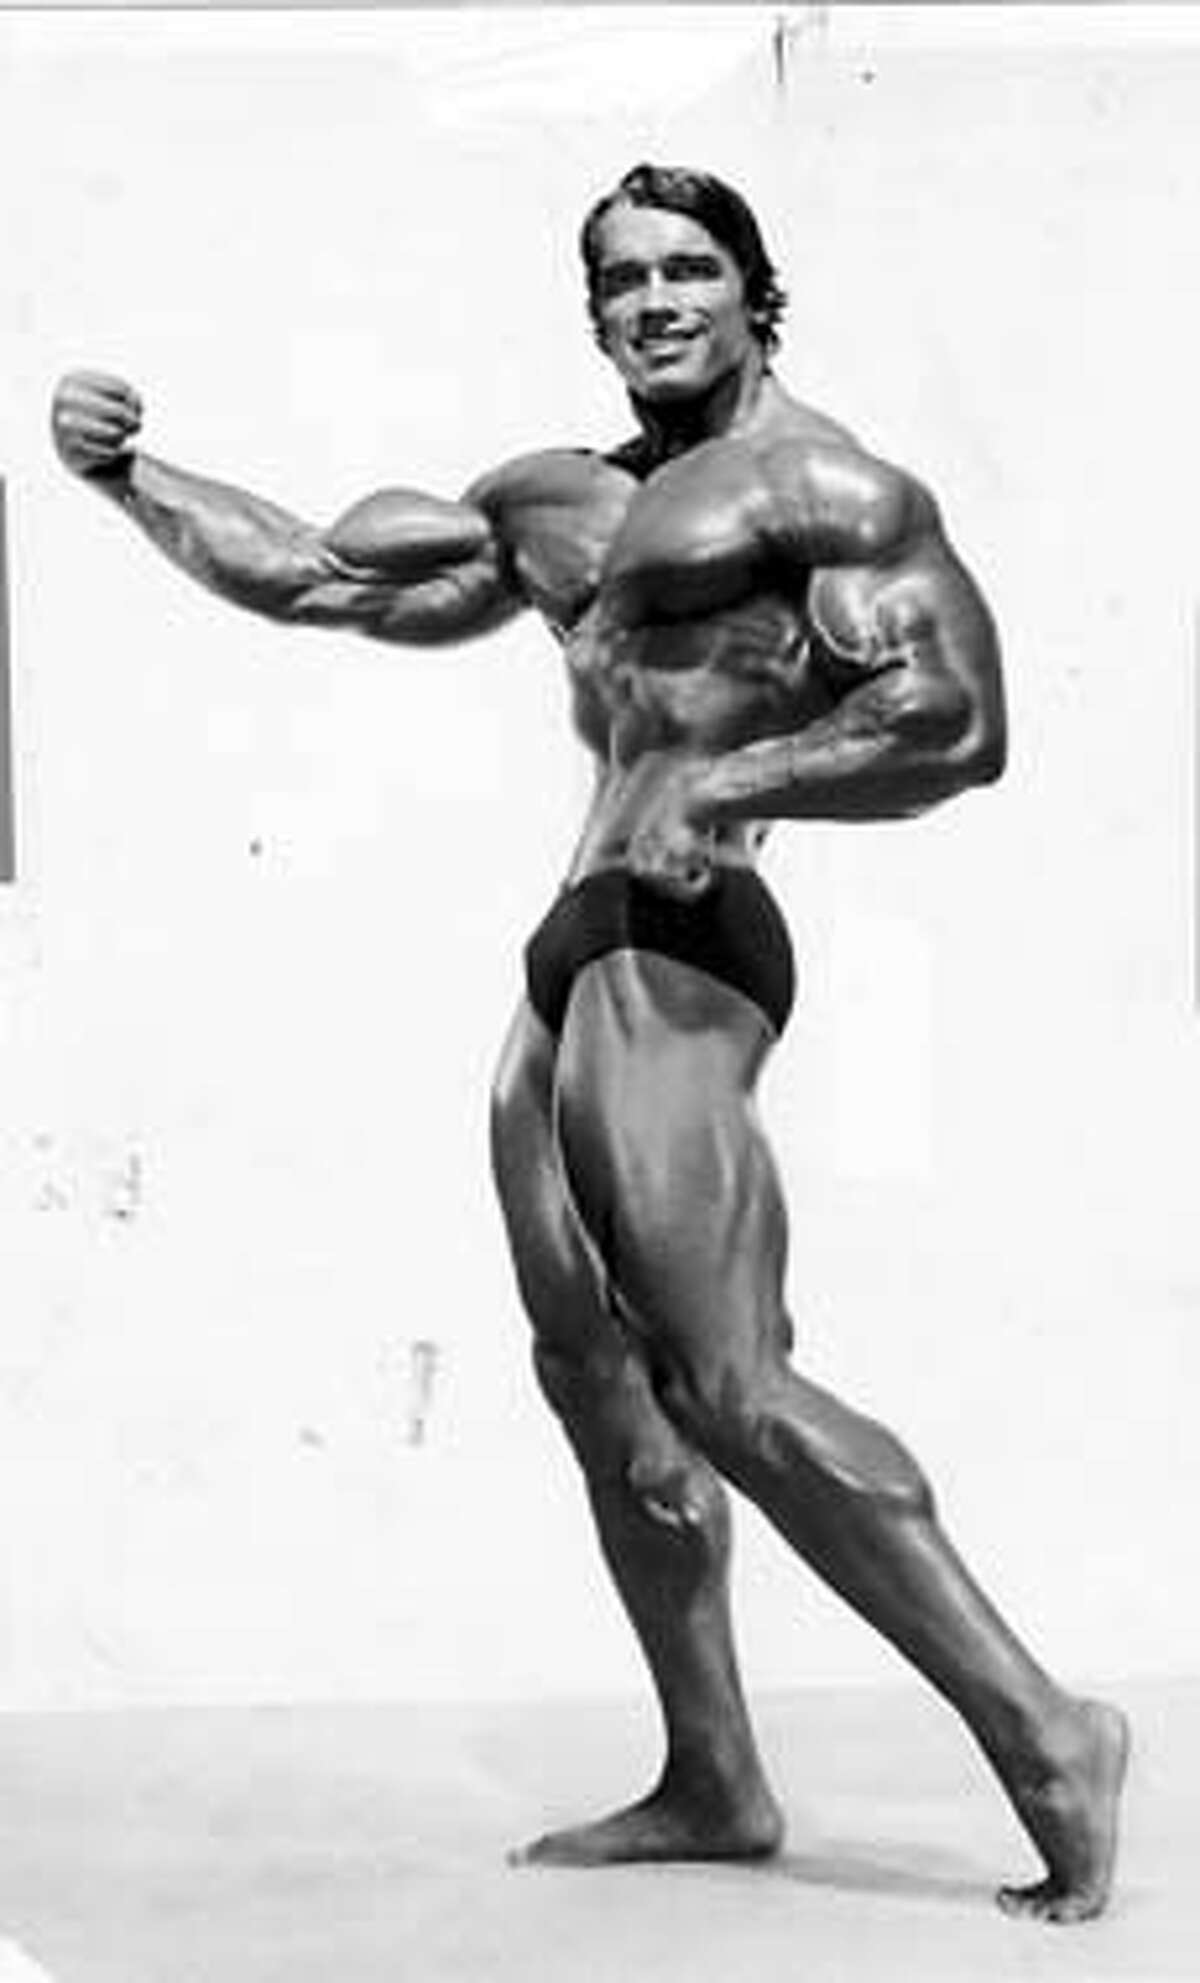 Schwarzenegger Linked To Contests With Steroids Questions Raised Over His Campaign Against Use